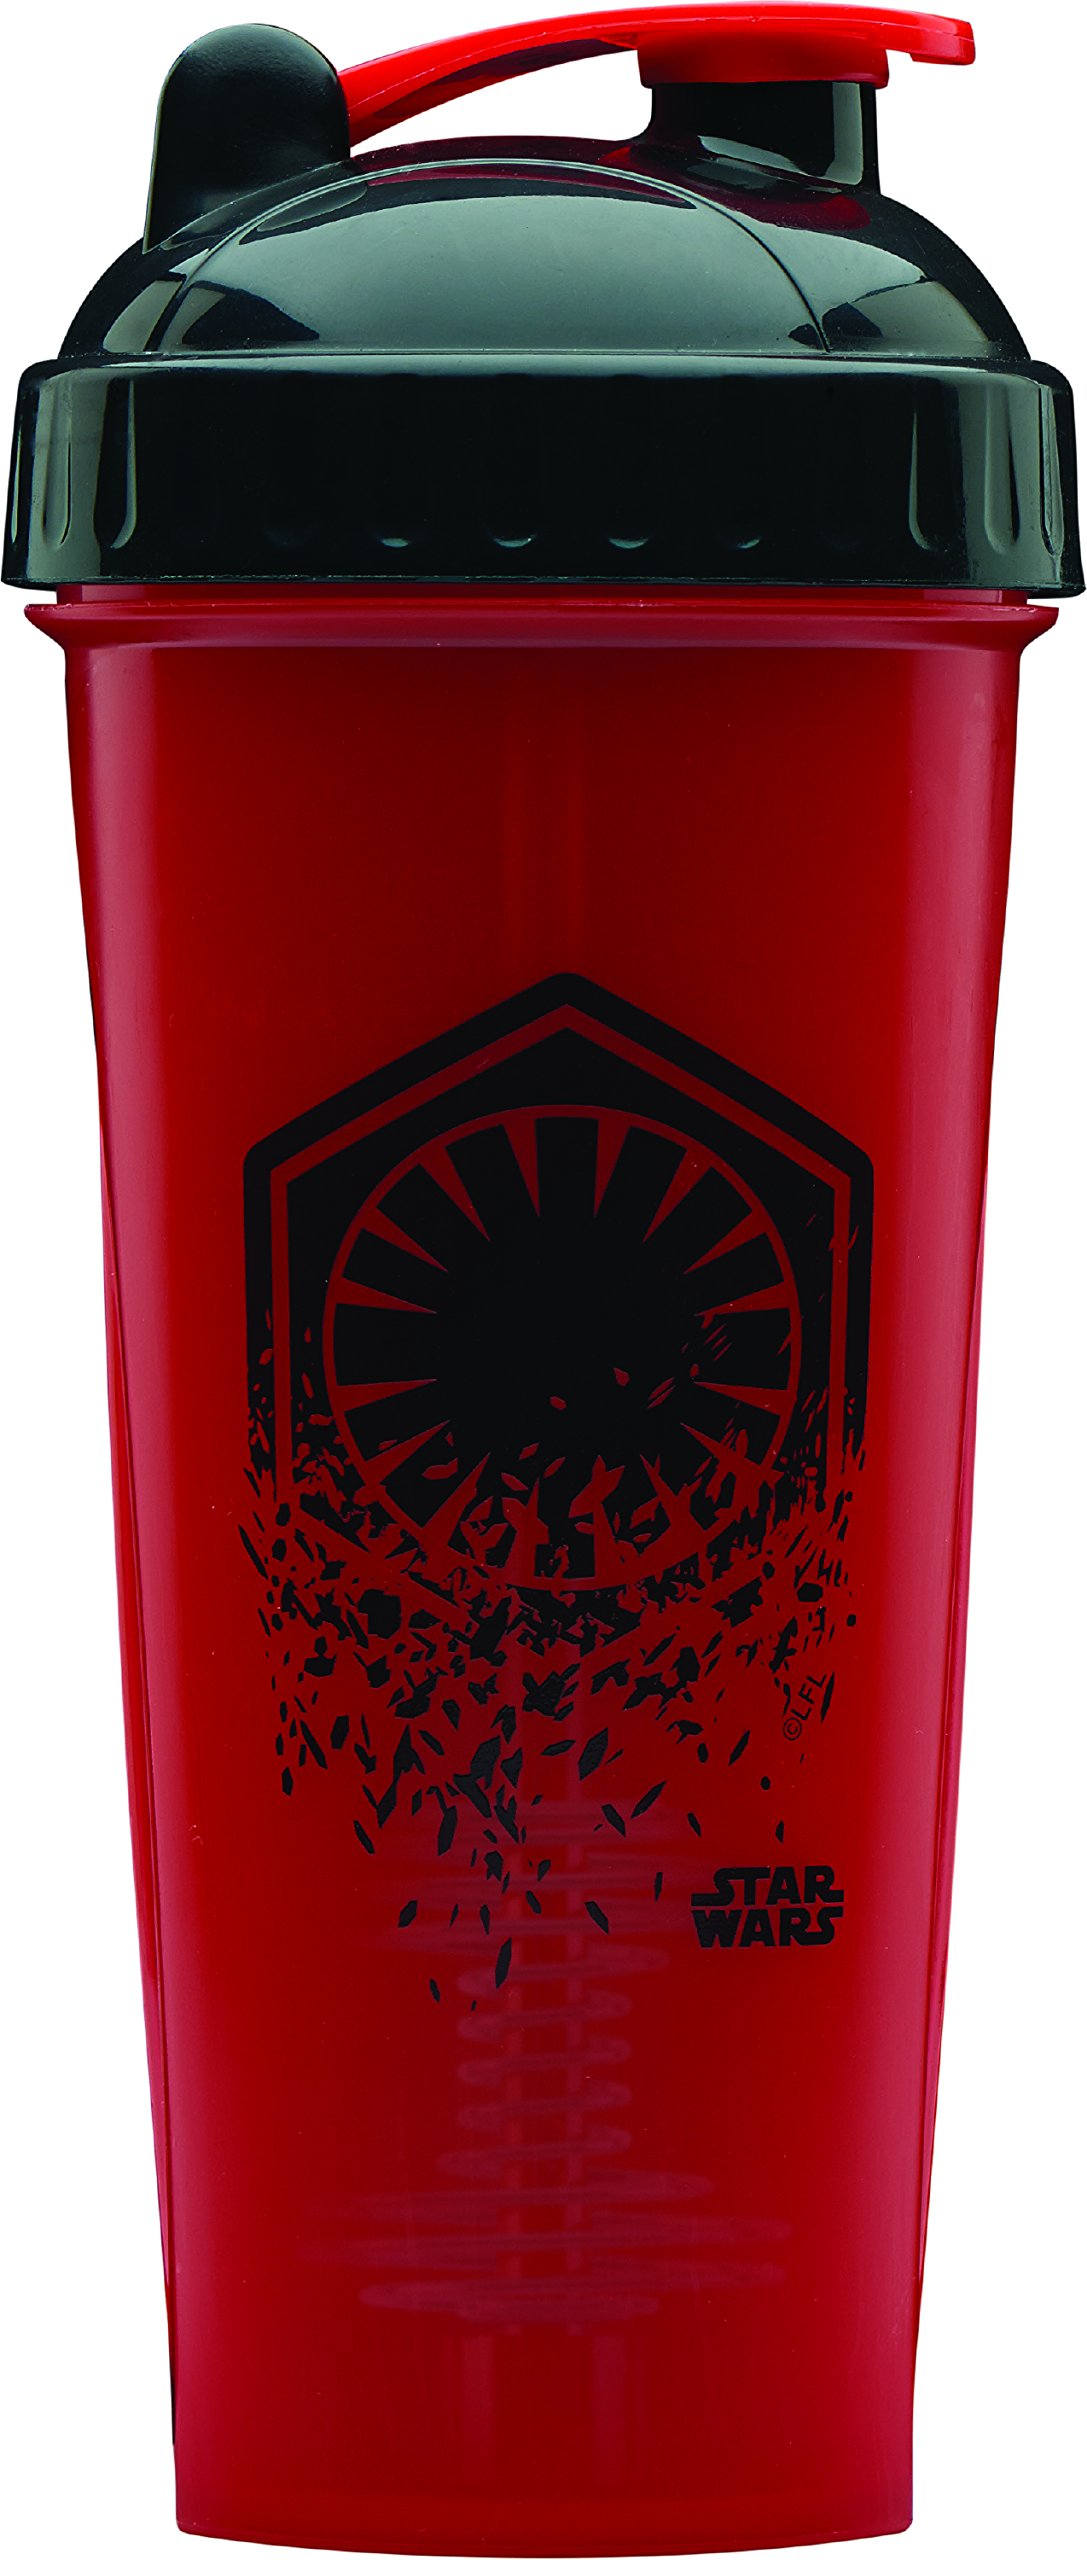 Performa Shaker - Star Wars Original Series Collection, Best Leak Free Bottle with Actionrod Mixing Technology for Your Sports & Fitness Needs! Dishwasher and Shatter Proof (First Order)(28oz)